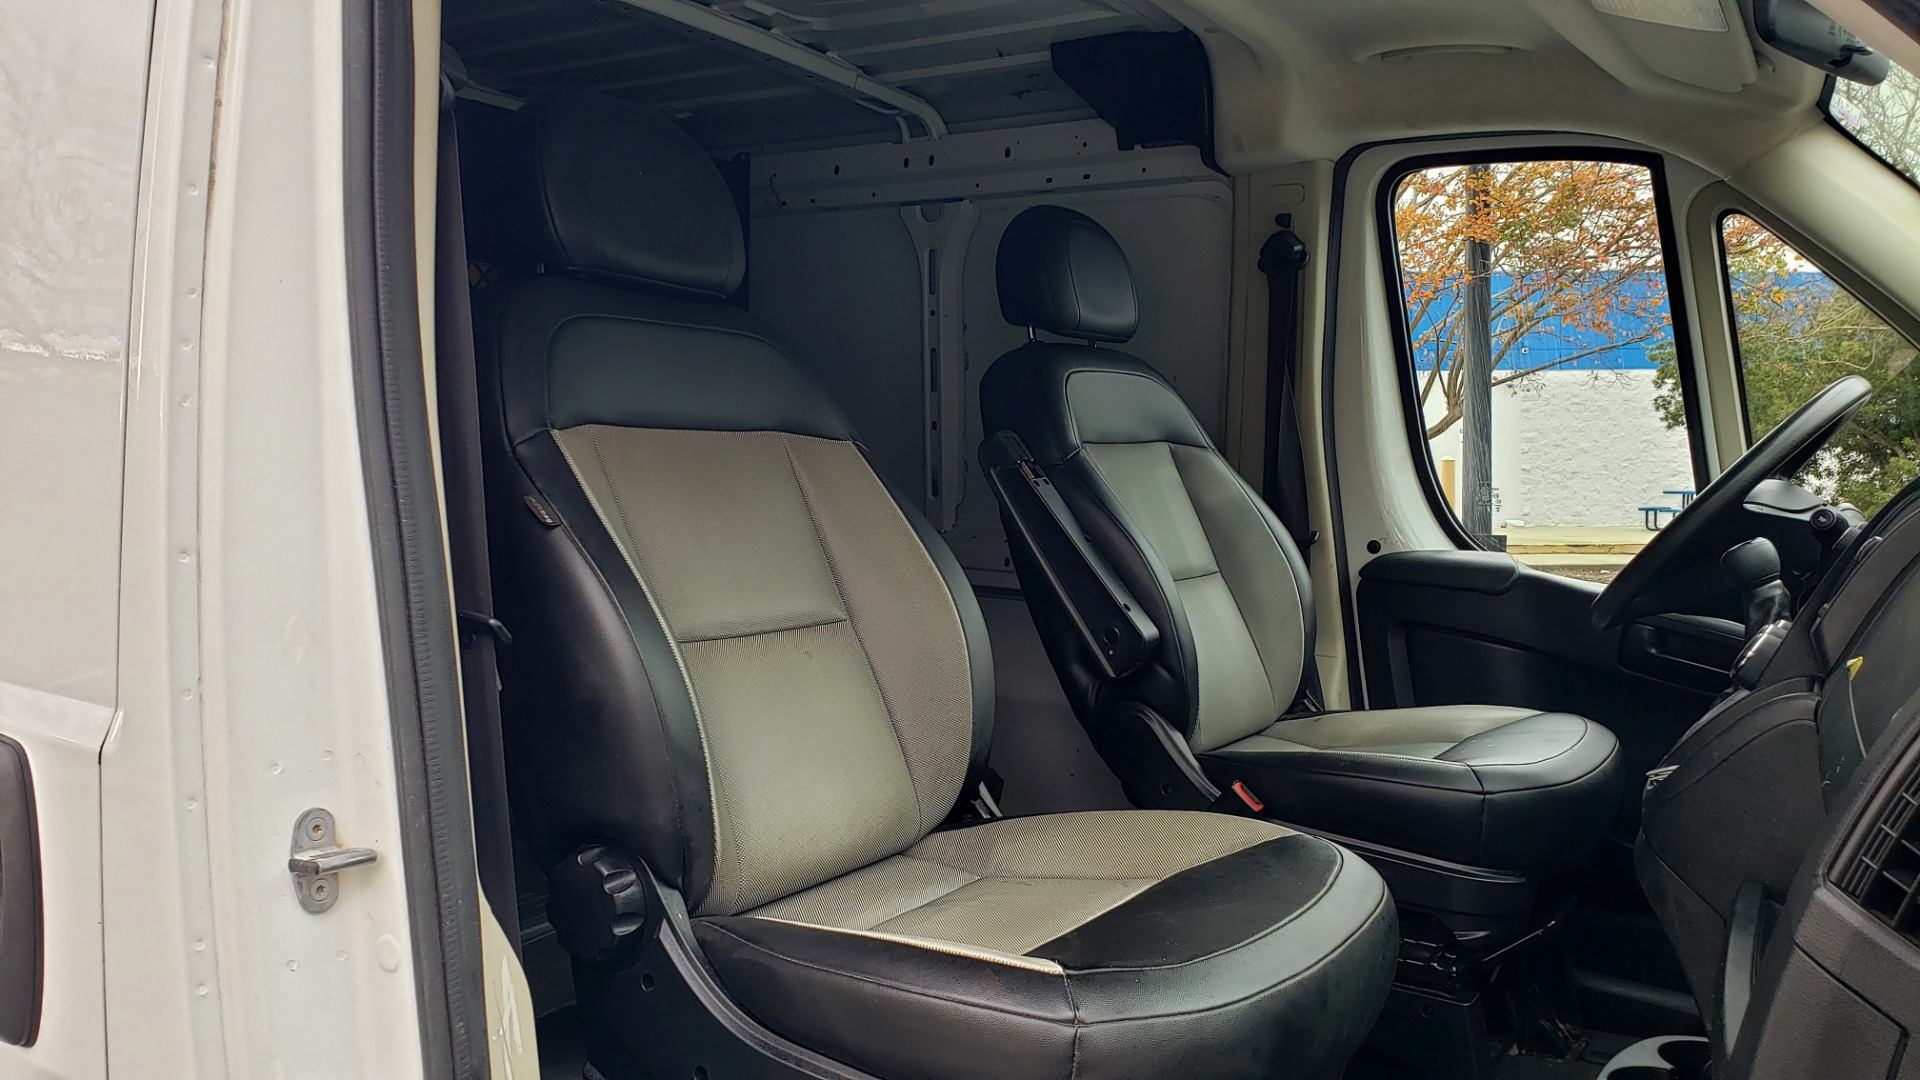 Used 2015 Ram PROMASTER CARGO VAN 136-INCH WB / LOW ROOF / LADDER RACK / INSIDE RACKS for sale $16,995 at Formula Imports in Charlotte NC 28227 52